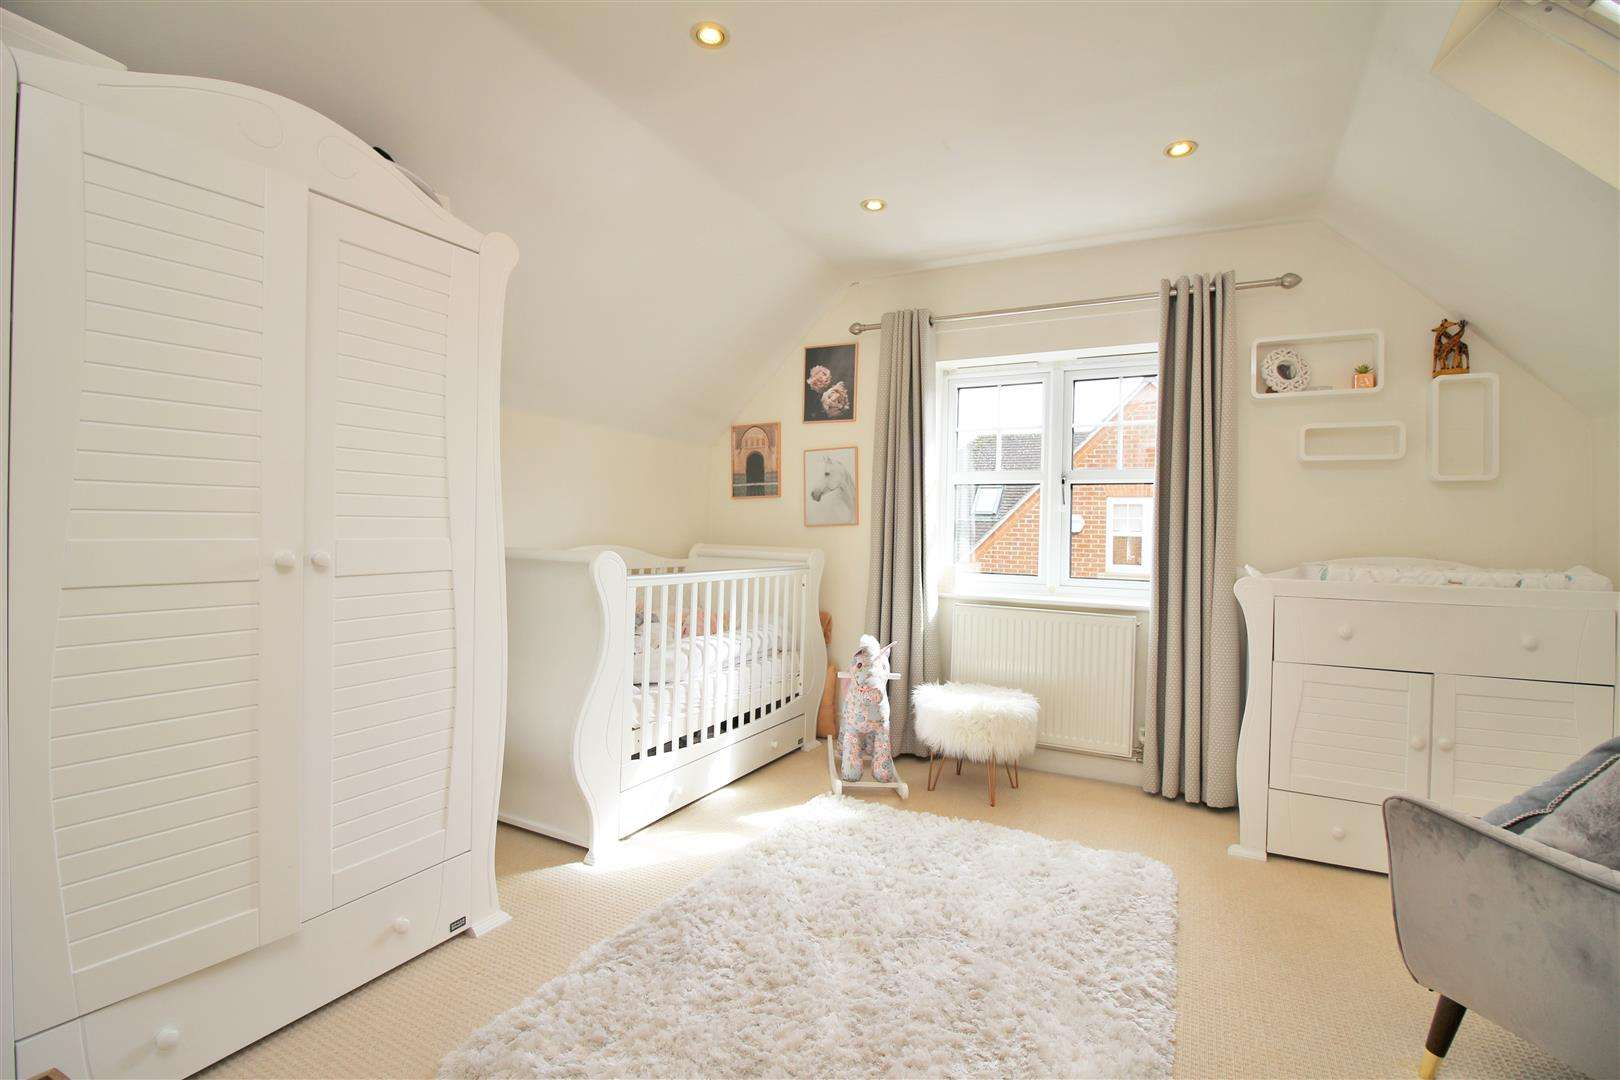 4 bed to rent in Bushey Heath - (Property Image 14)